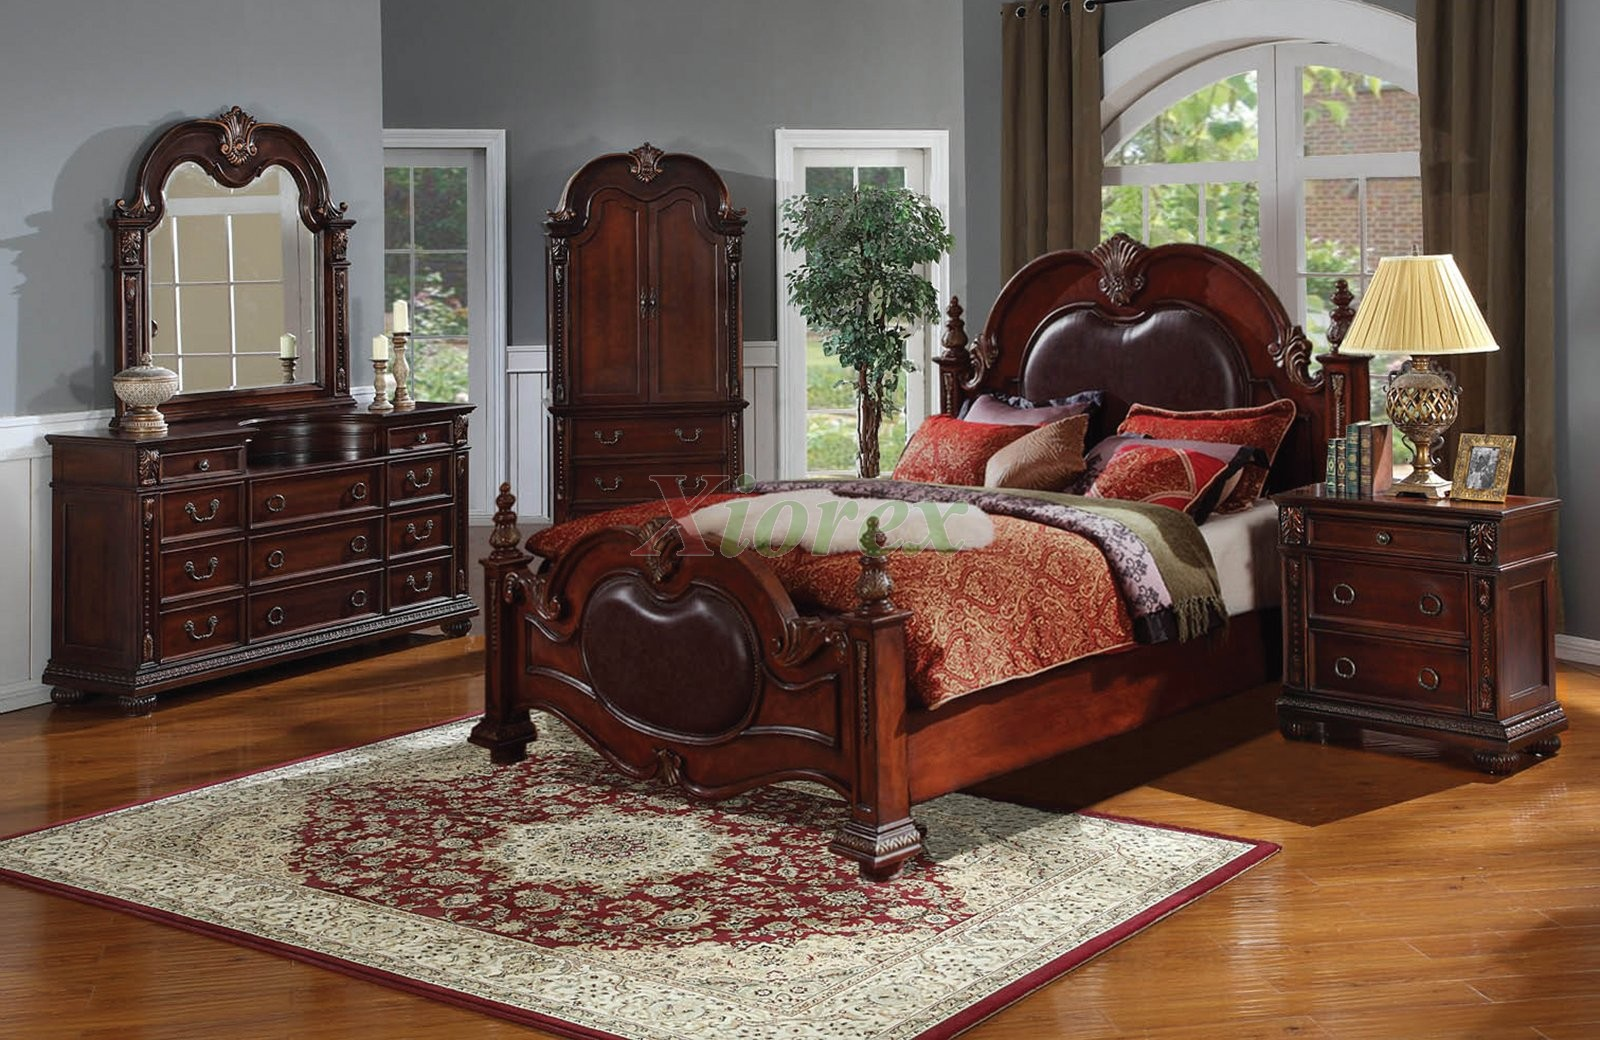 poster bedroom furniture set with leather headboard 121